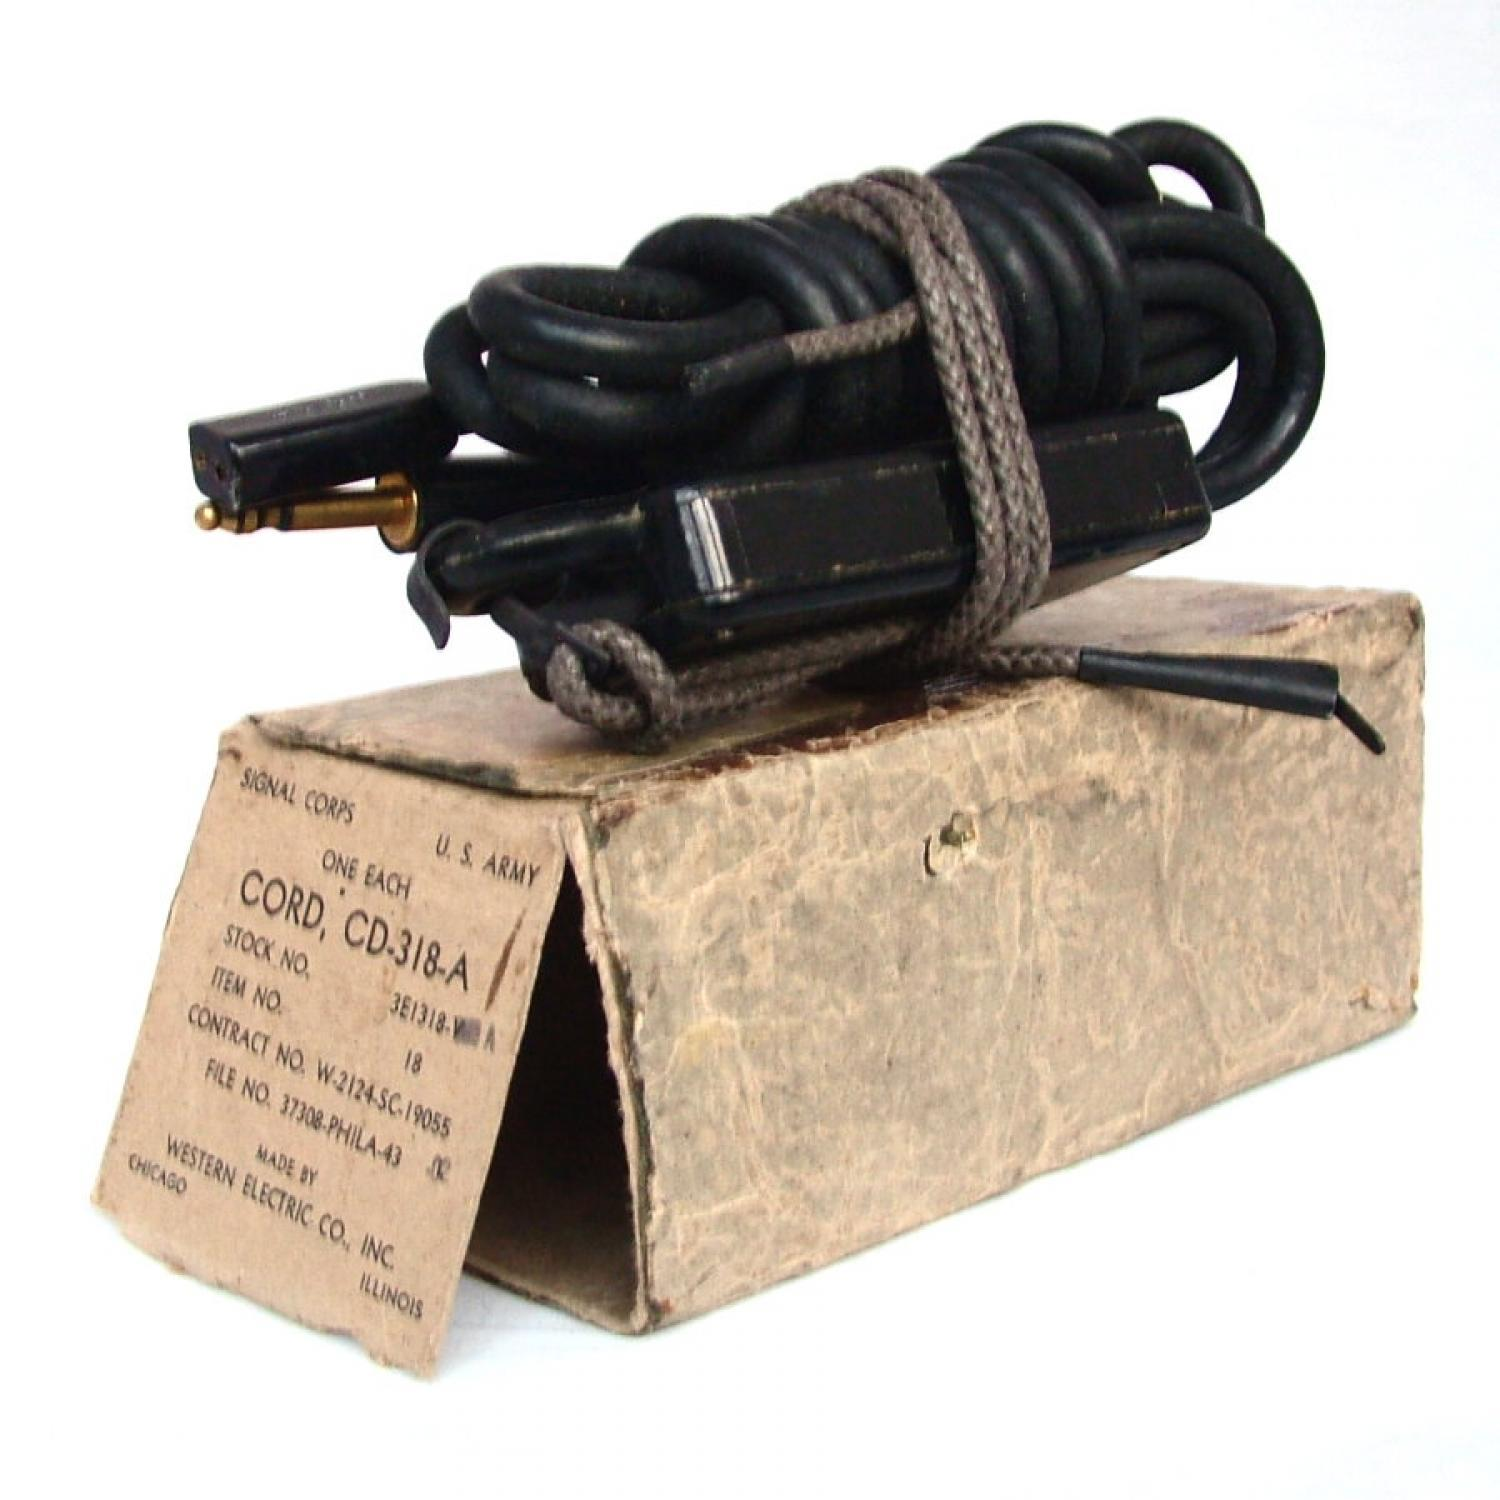 USAAF Throatmicrophone Extension Cord